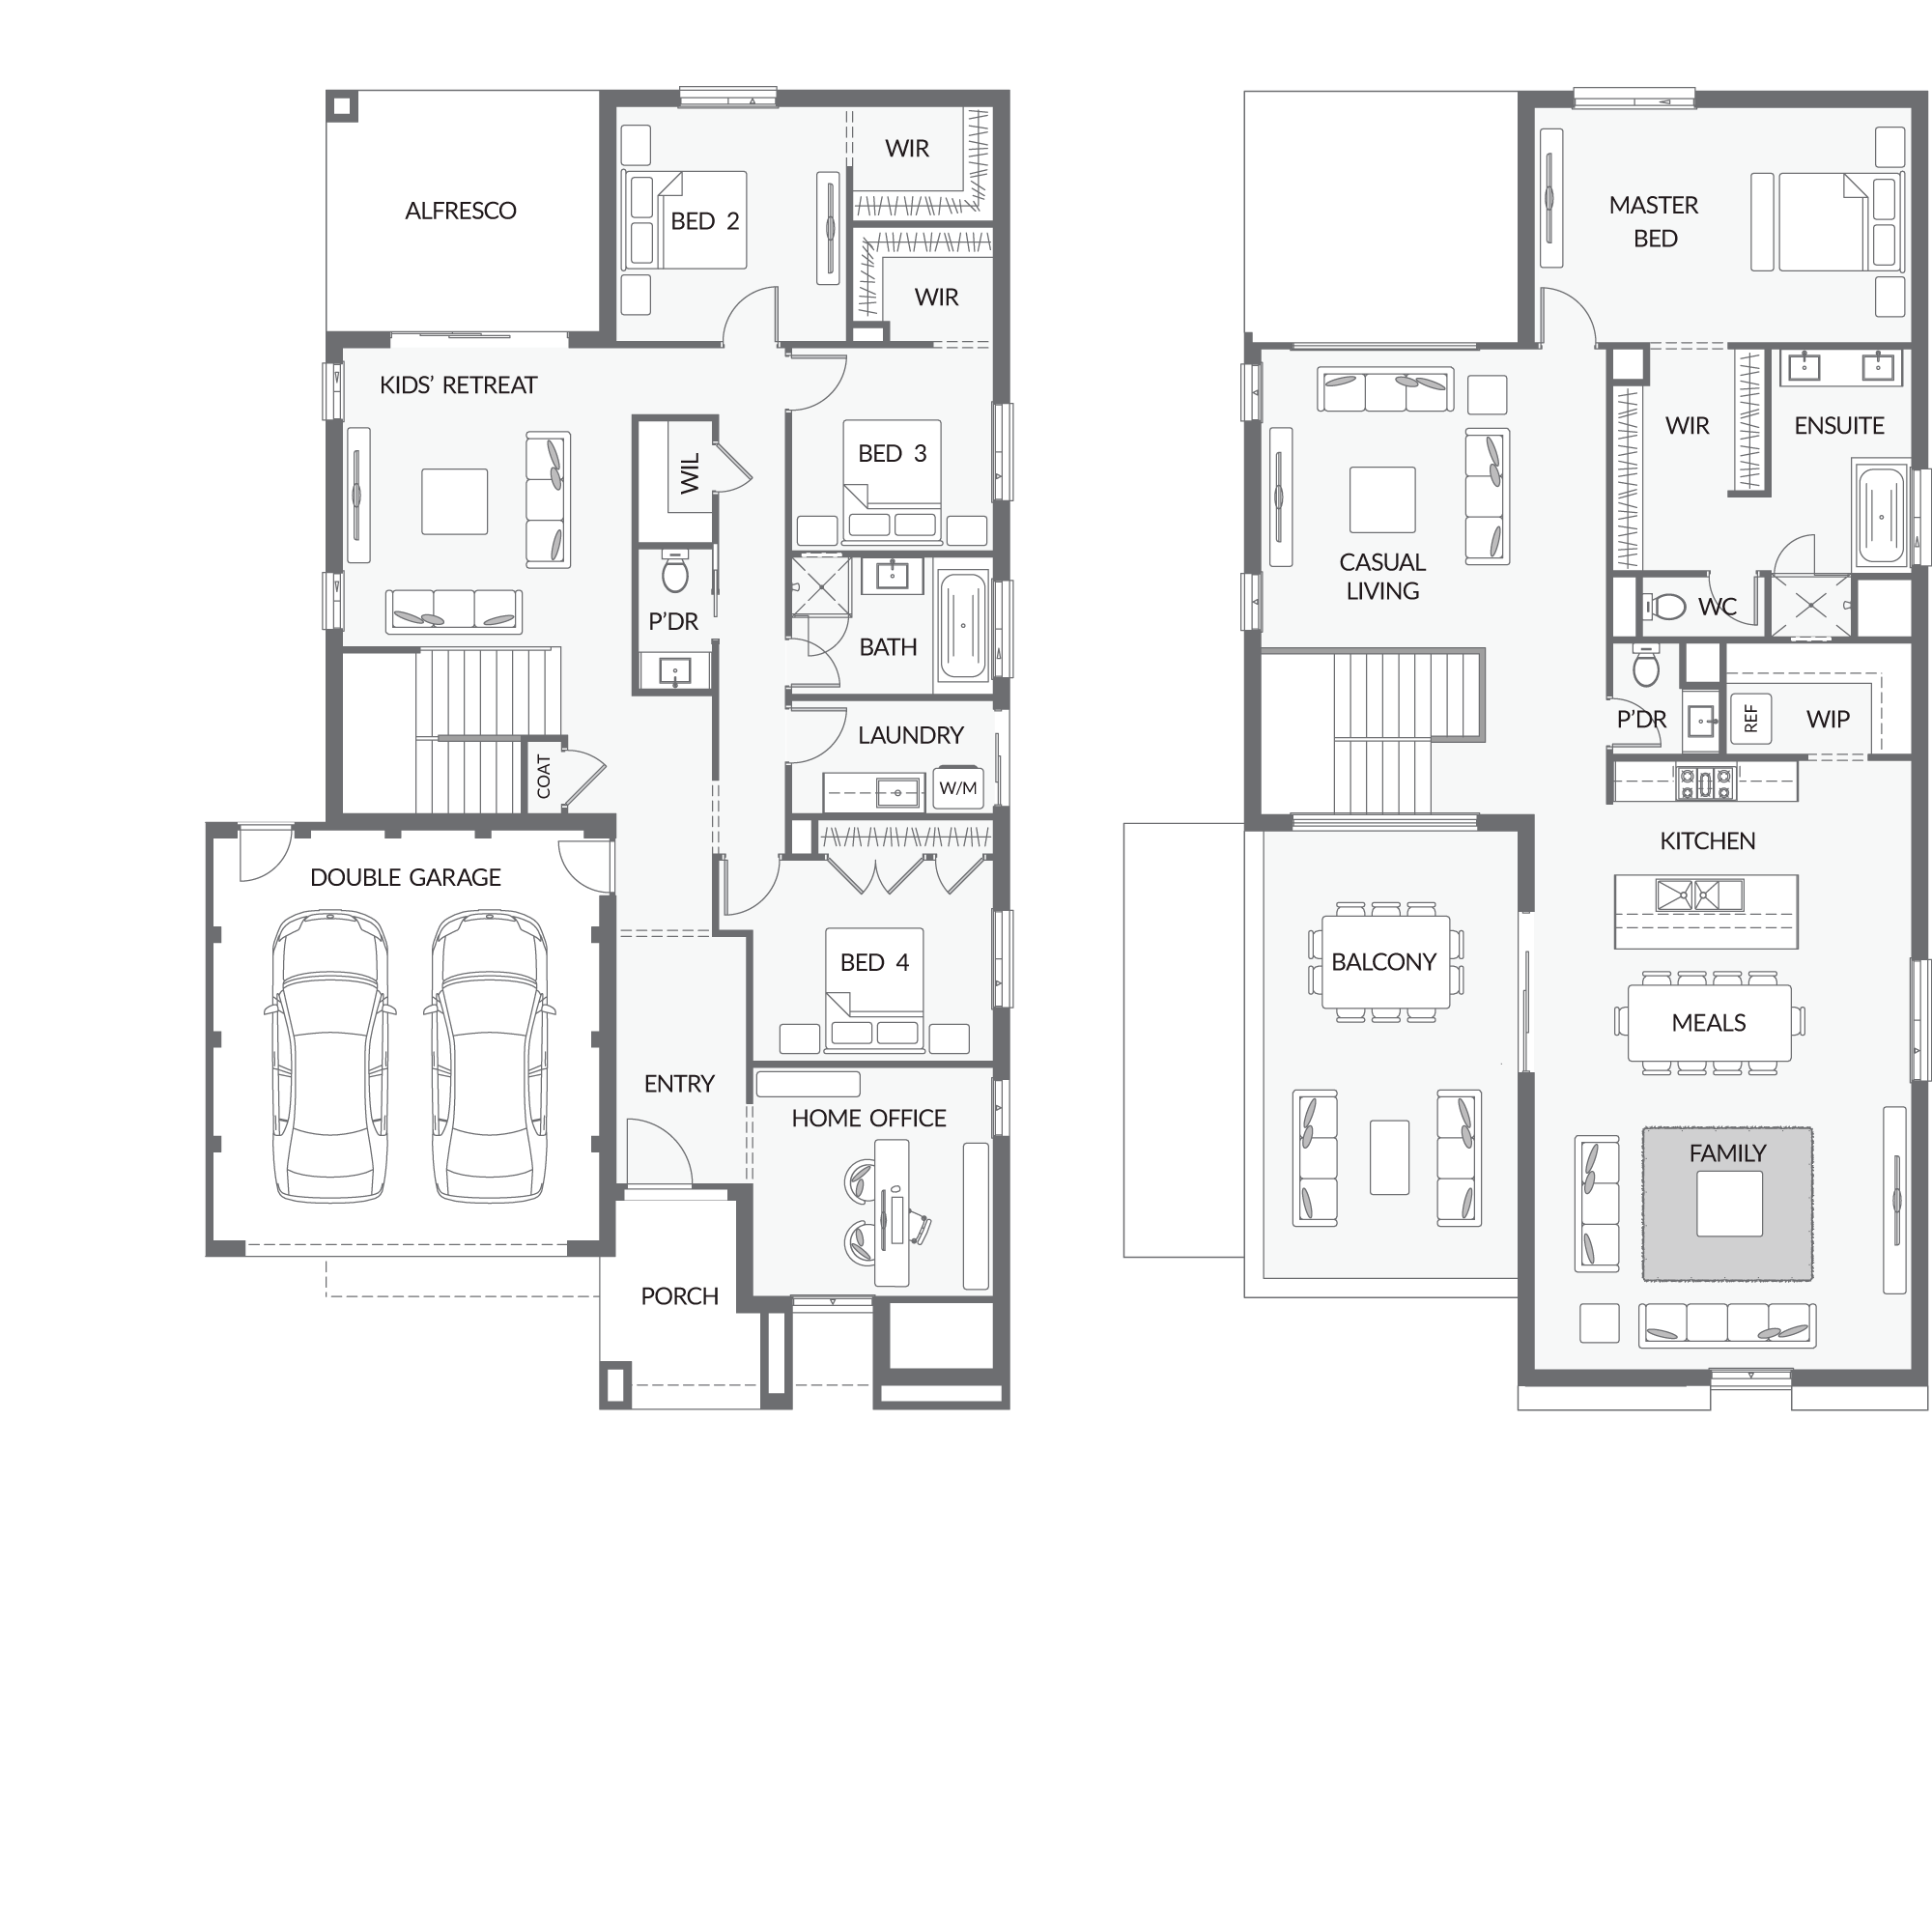 Www Urbanedgehomes Com Au Home Designs Double Storey Severn House Plans Australia Double Storey House Plans Coastal House Plans